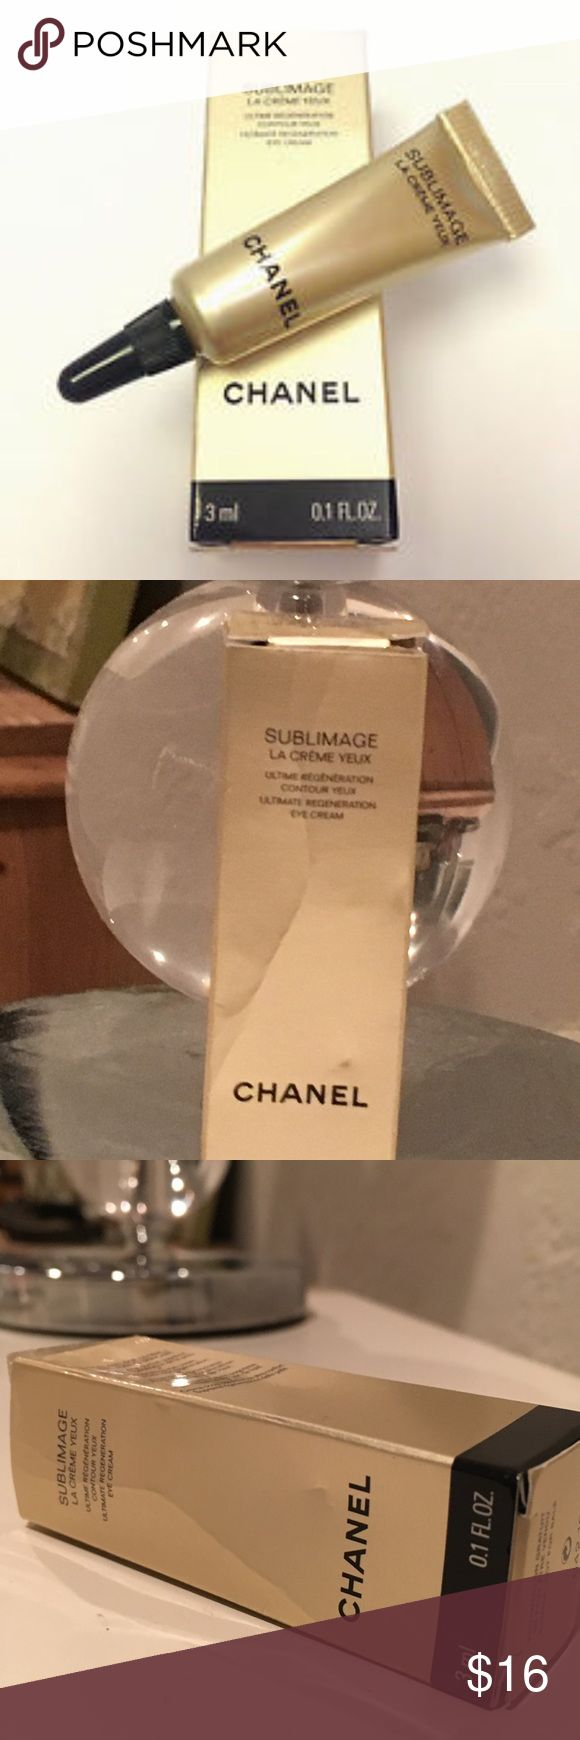 Chanel Sublimage La Creme Yeux 3ml .1oz Nib Chanel Sublimage La Creme Yeux Regenerating Eye Cream 3ml .1oz Travel Size This is a great size to travel with ; or if you're not wanting to spend $300-$400 CHANEL Makeup